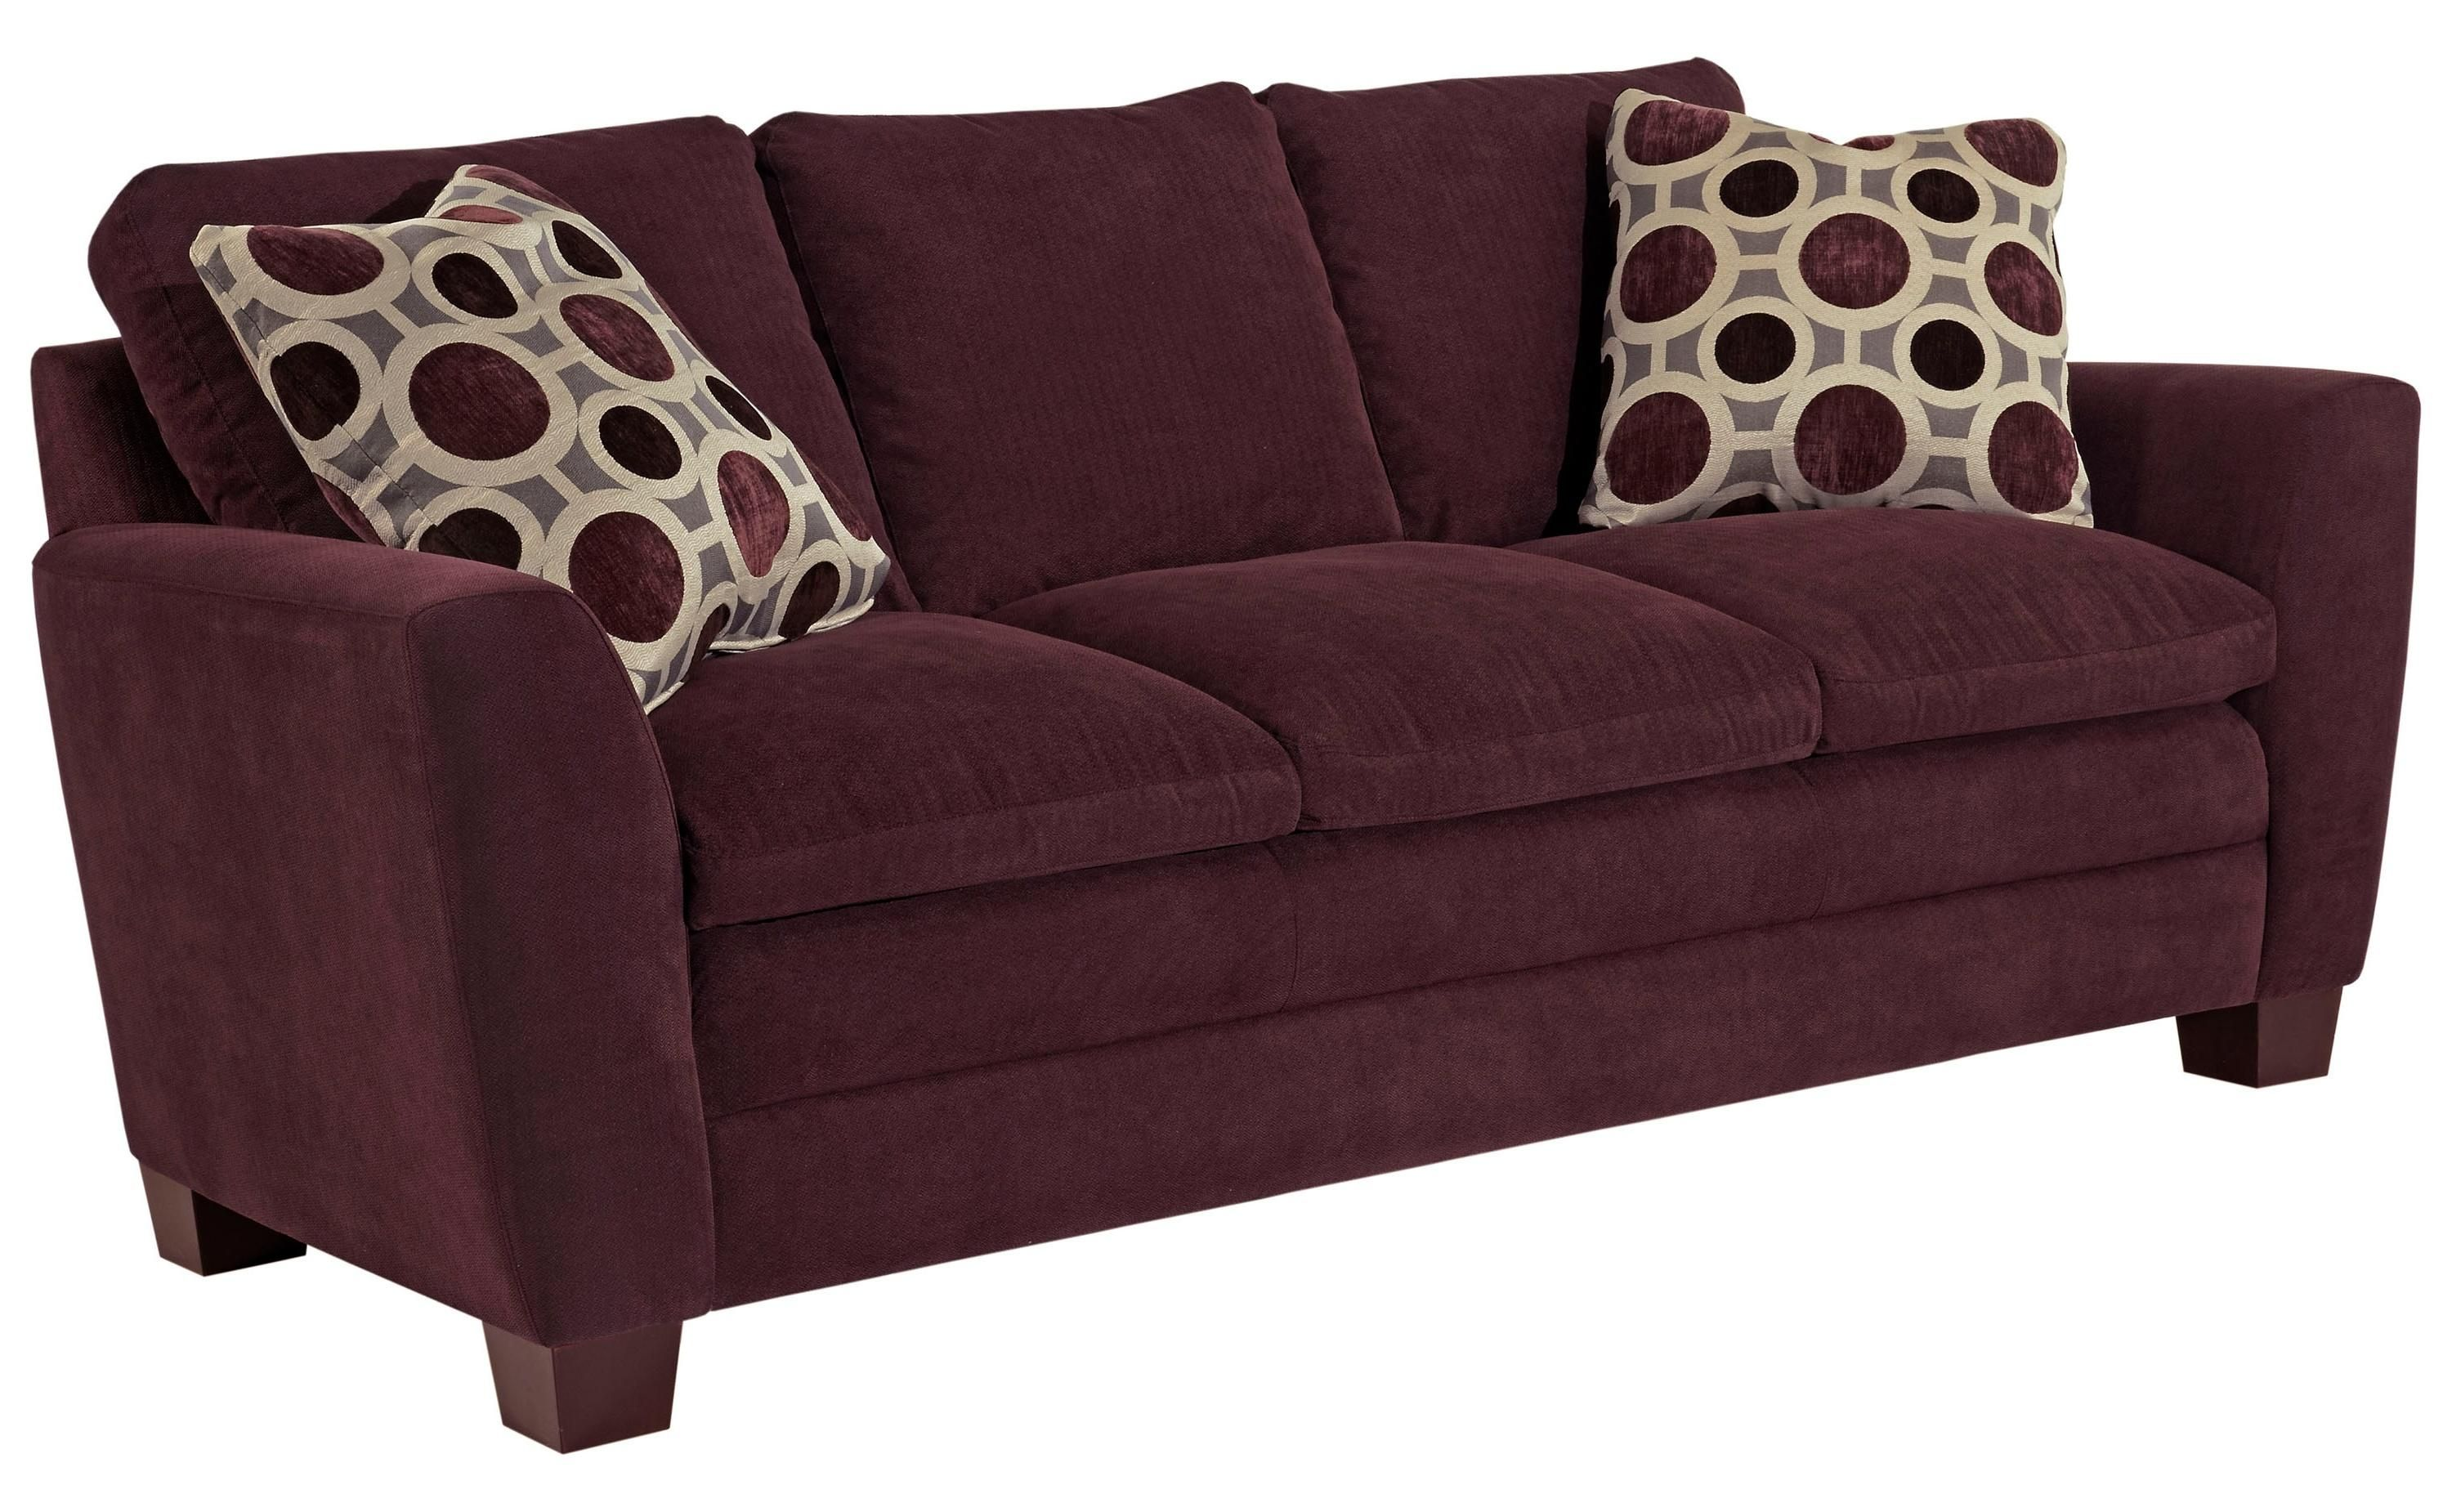 Best Plum Colored Courtney Sofa By Broyhill Furniture Color 640 x 480